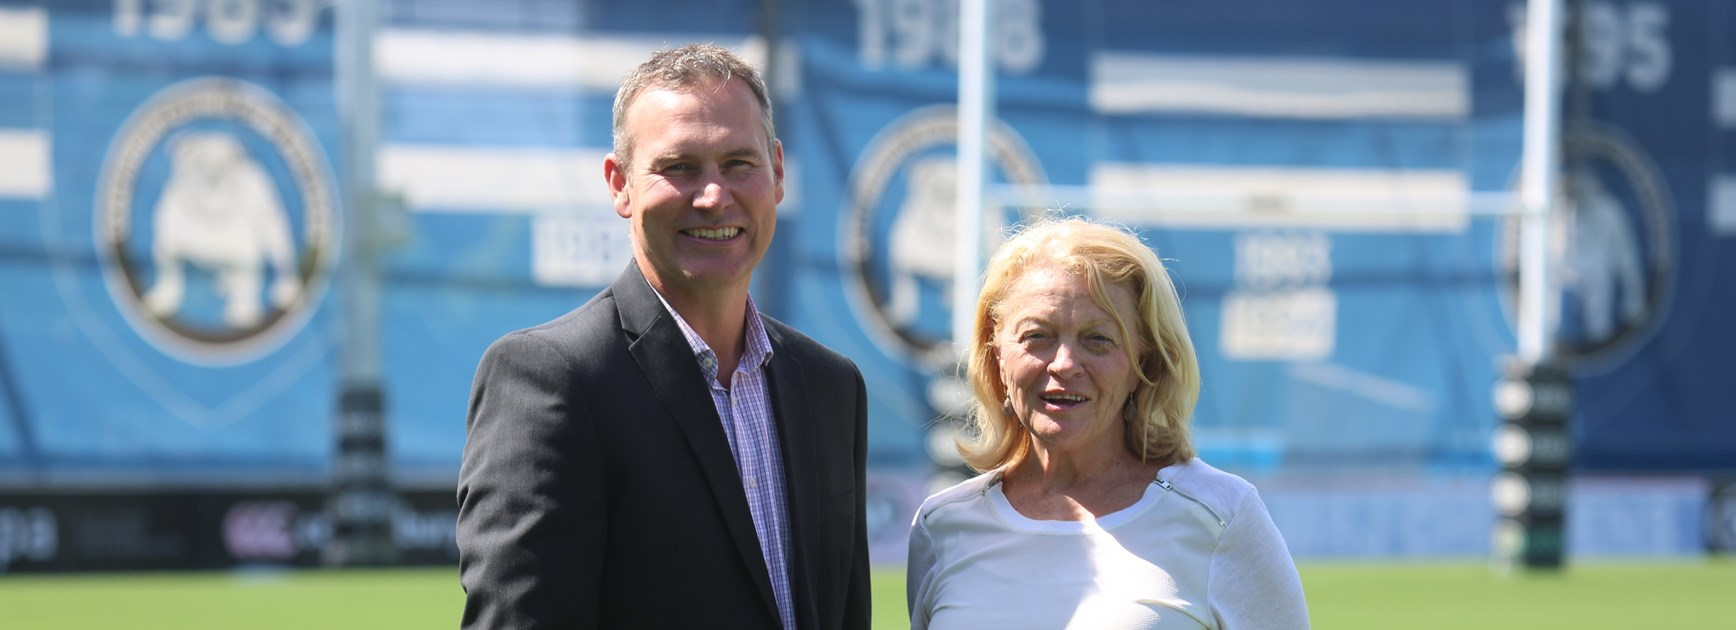 Bulldogs CEO Andrew Hill and chair Lynne Anderson.